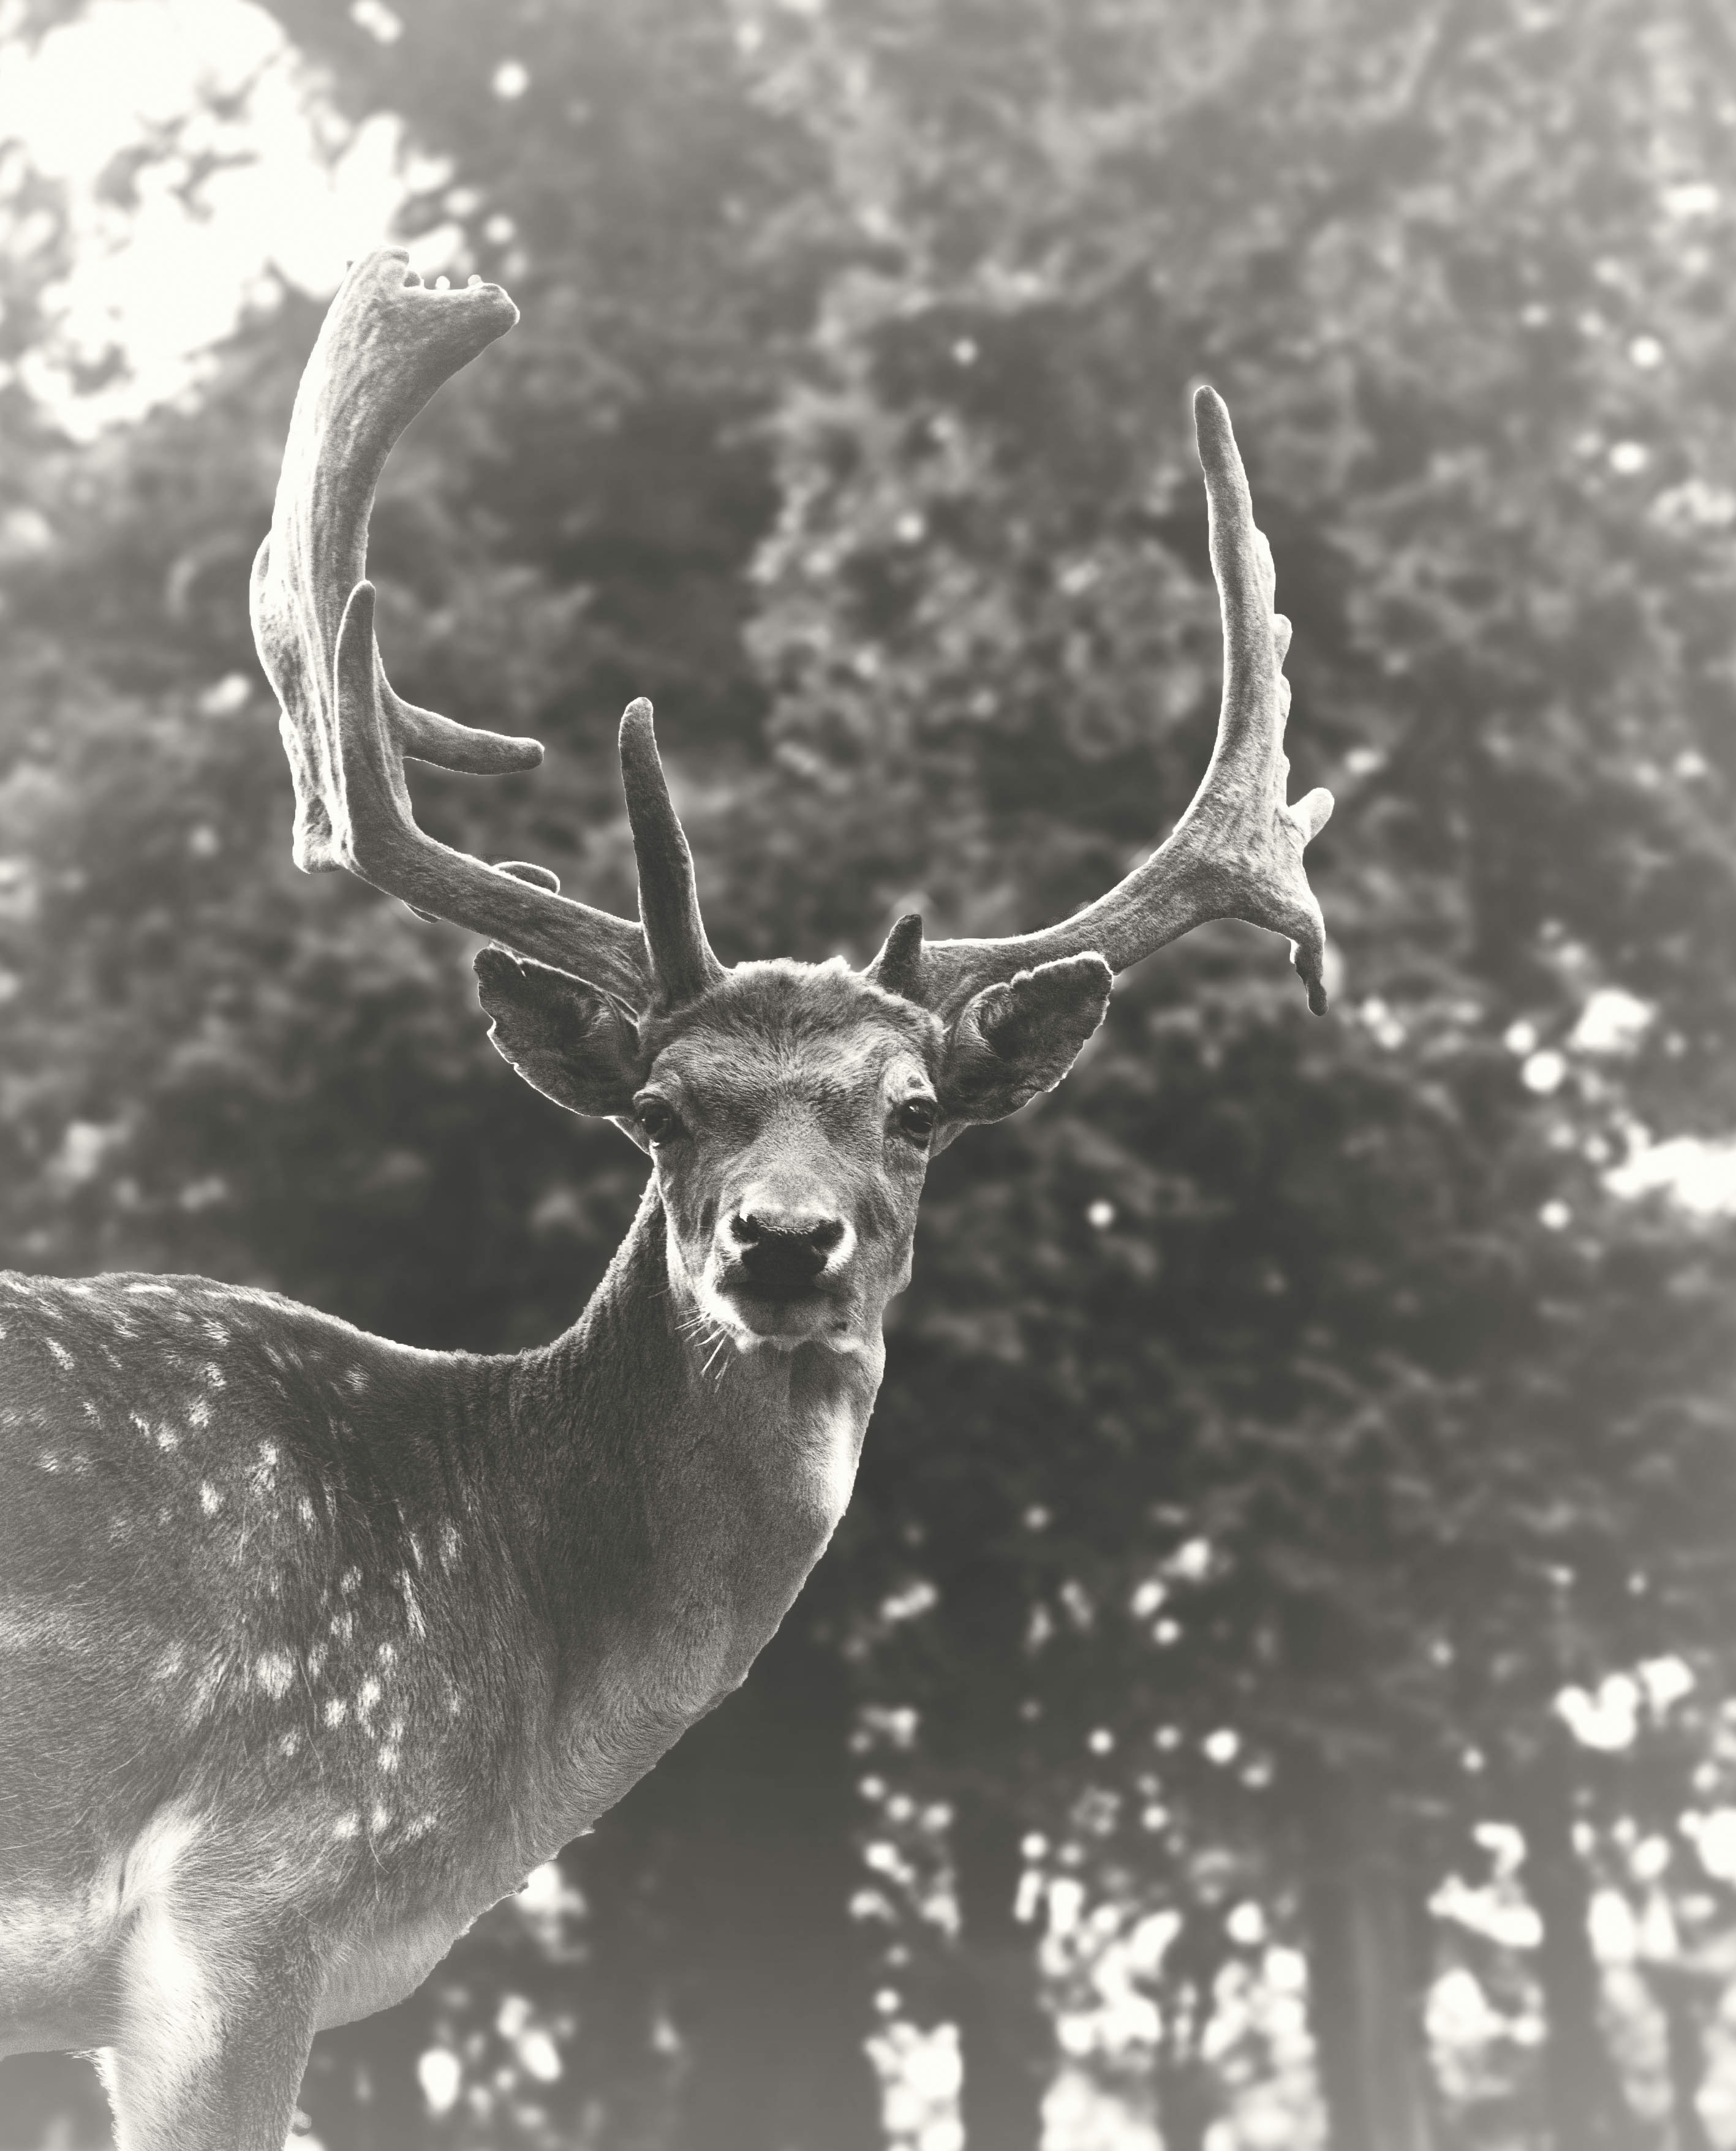 grayscale photography of moose